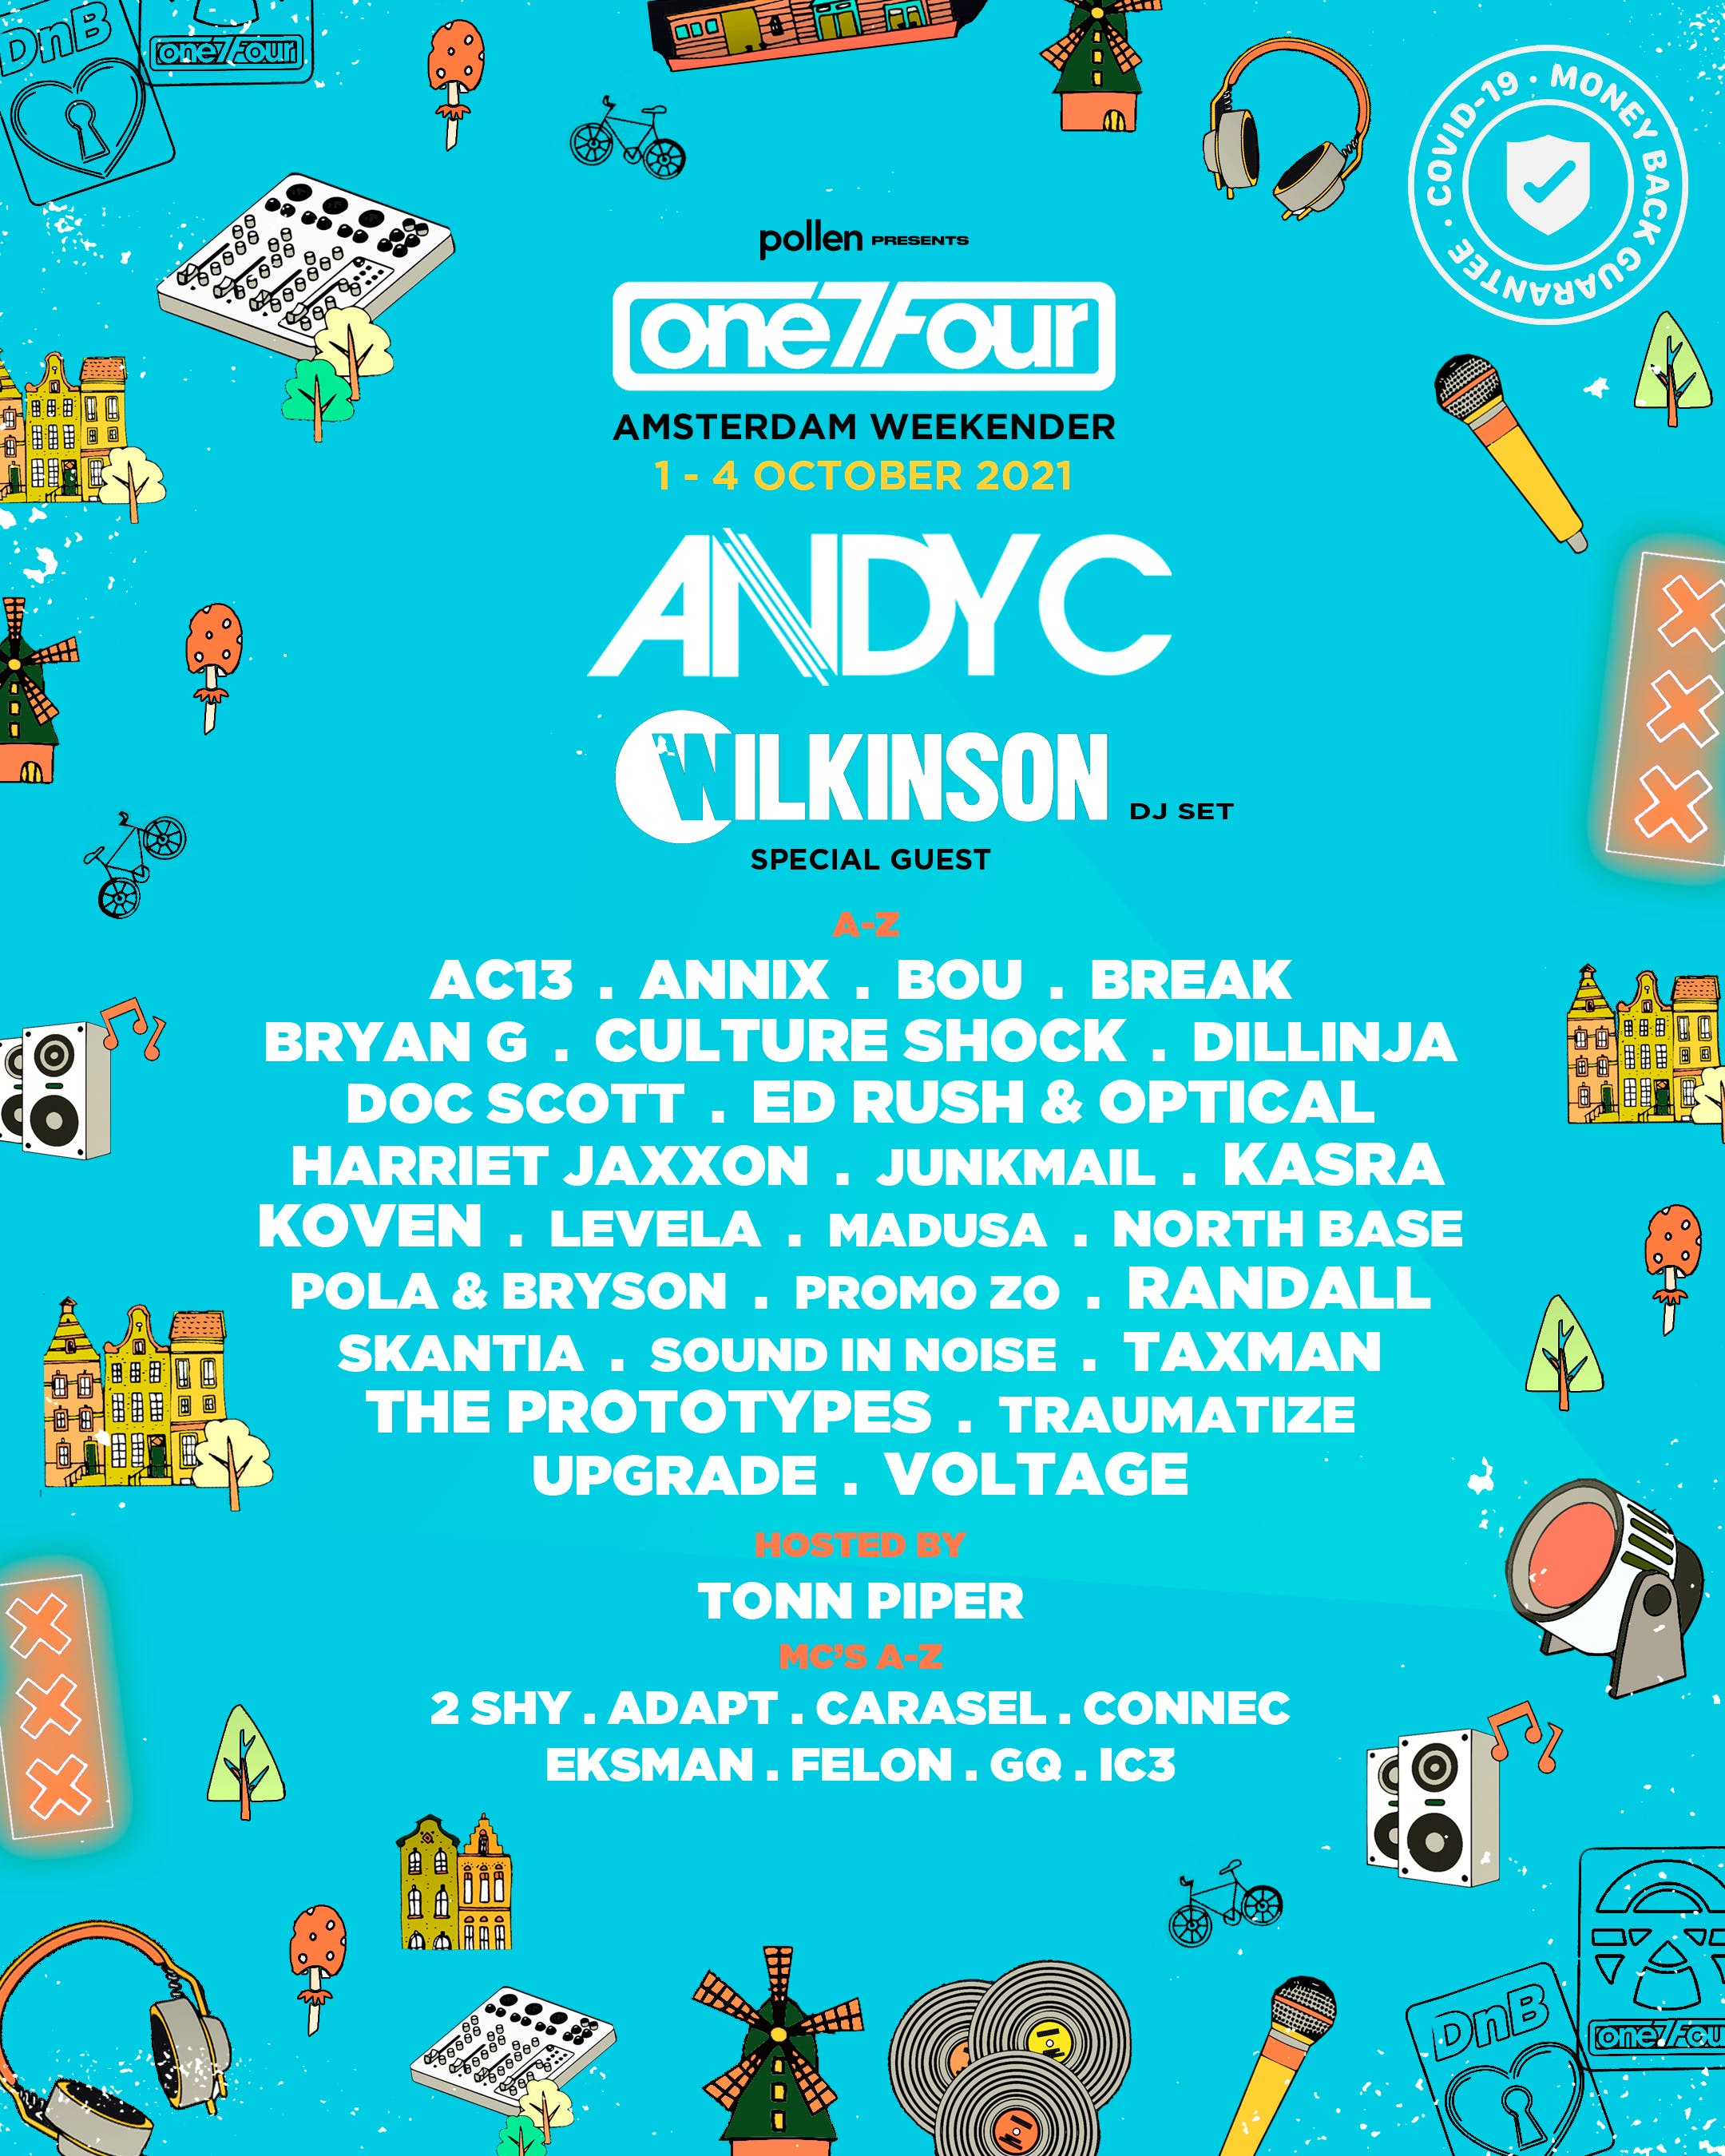 Andy C One 7 Four Line up image.